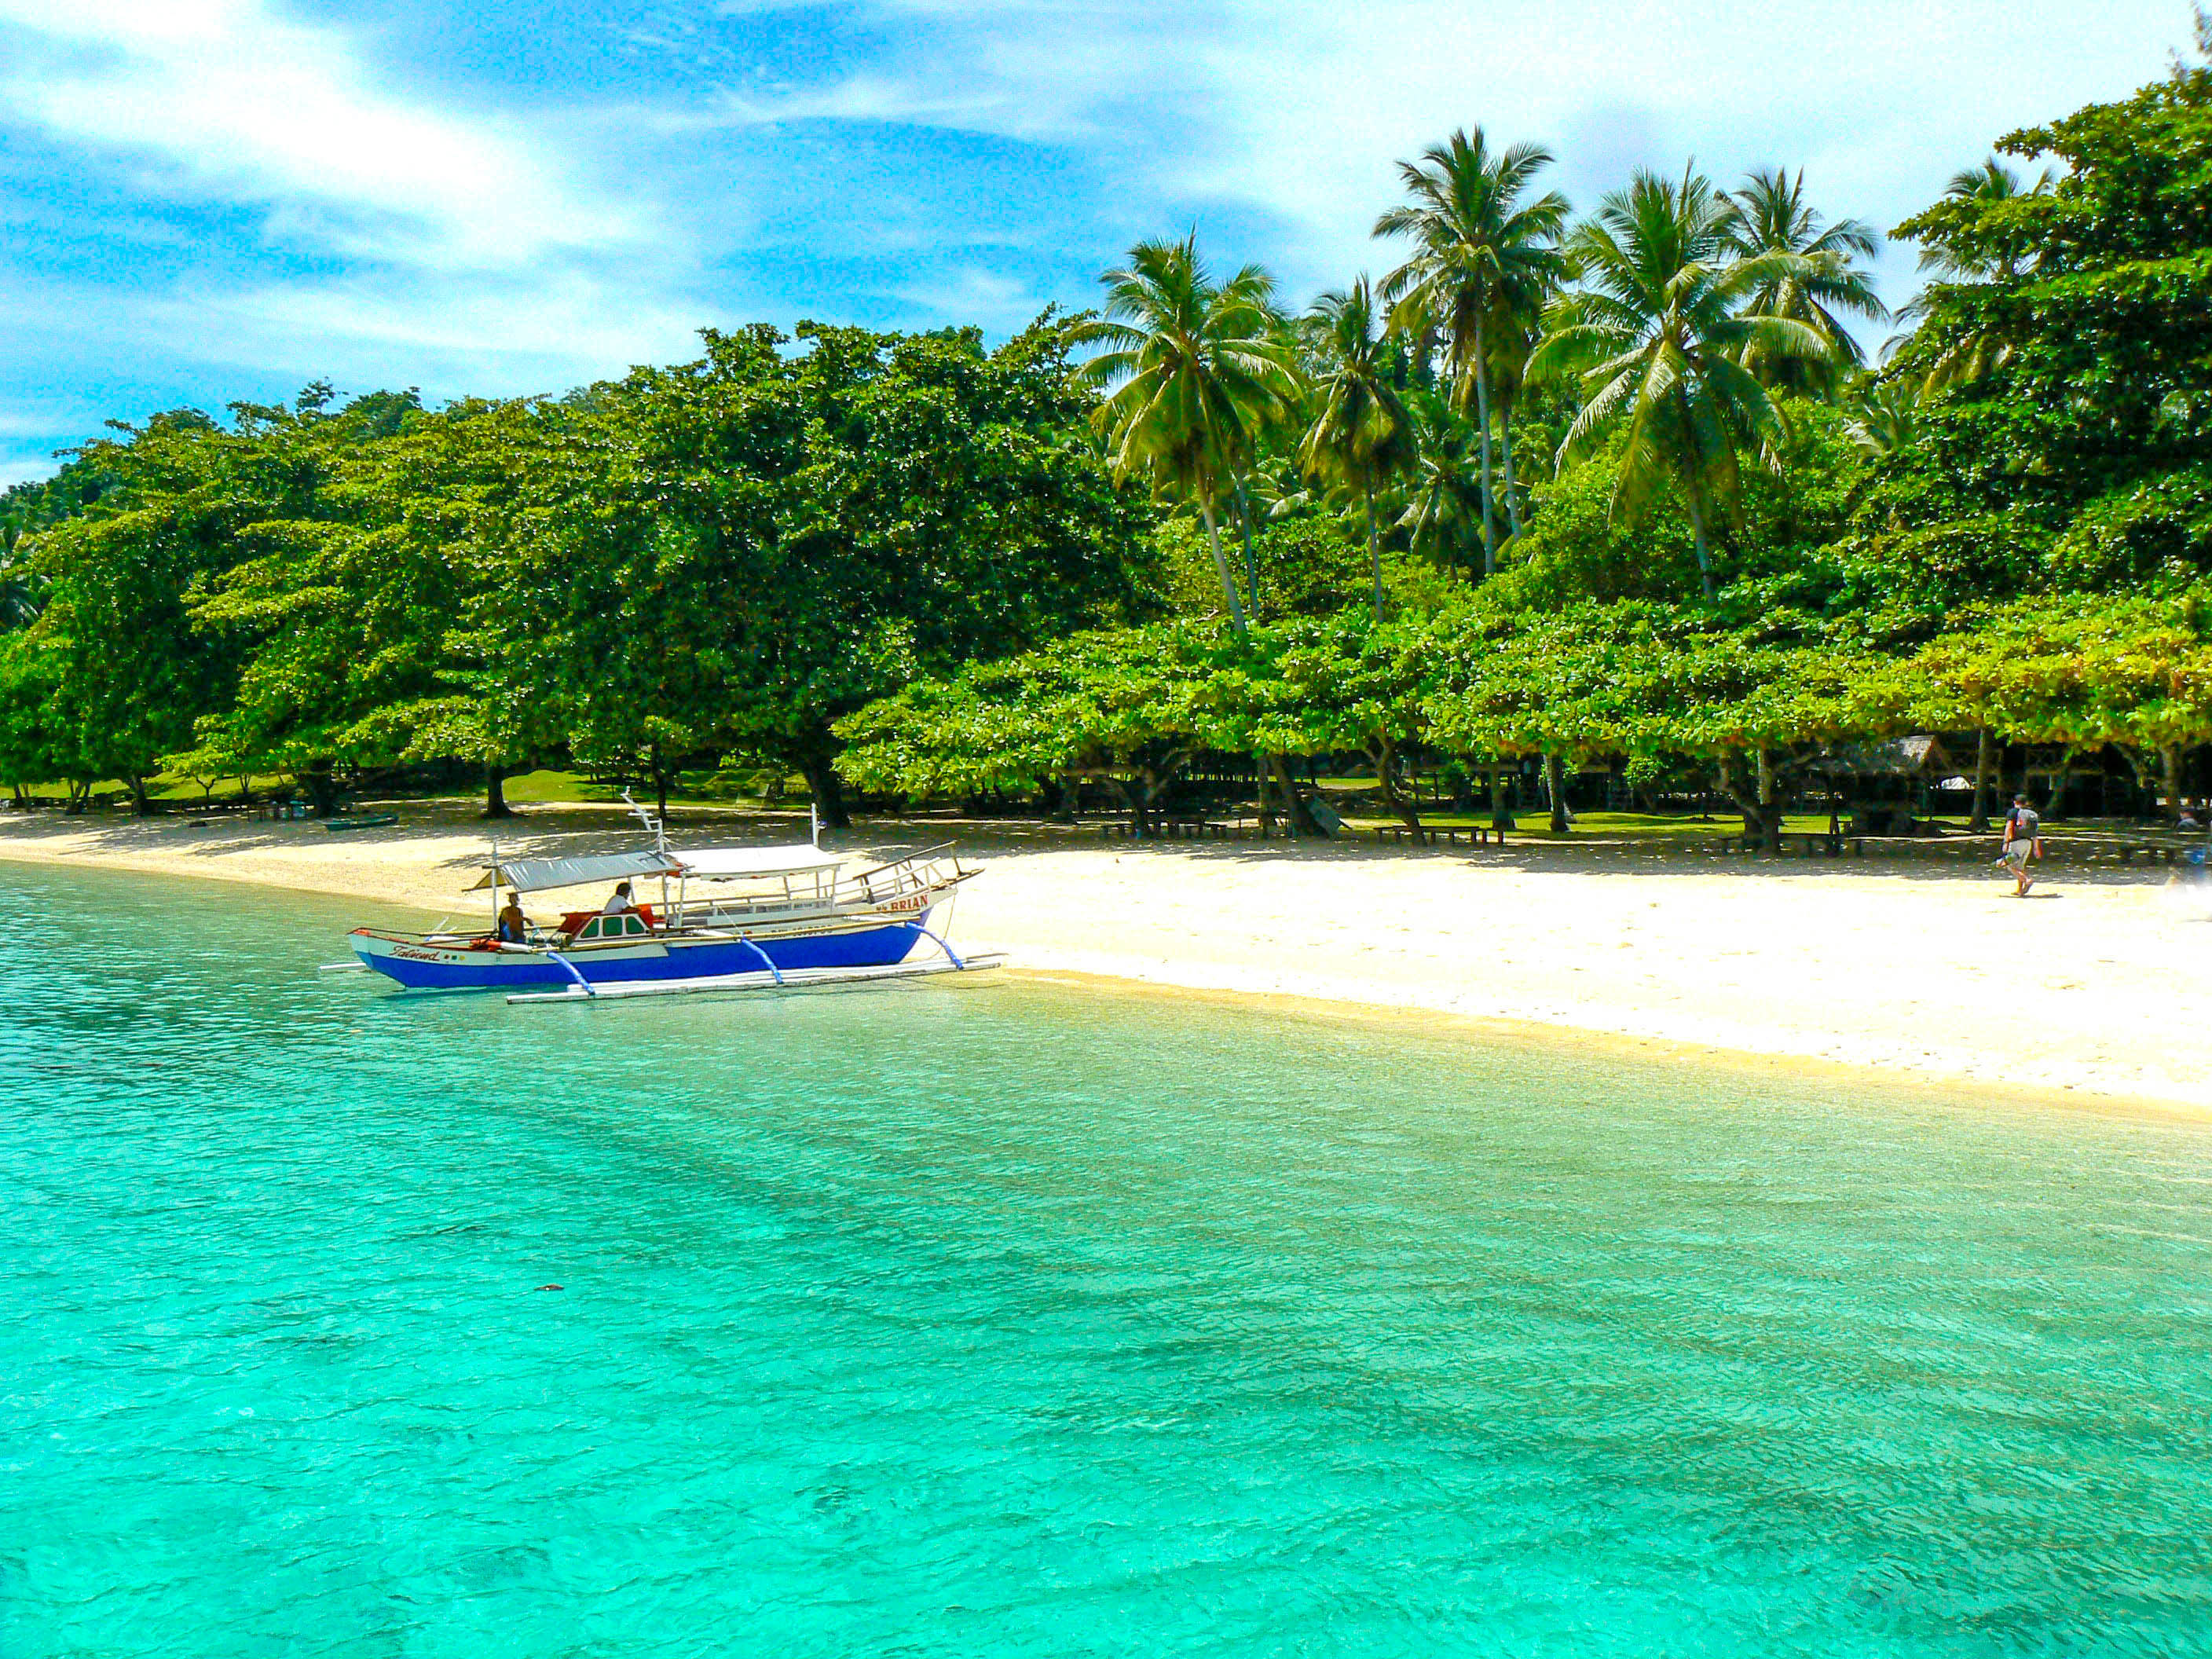 Boat moored on a white sandy shore lined with trees and coconut palms in Samal, Philippines